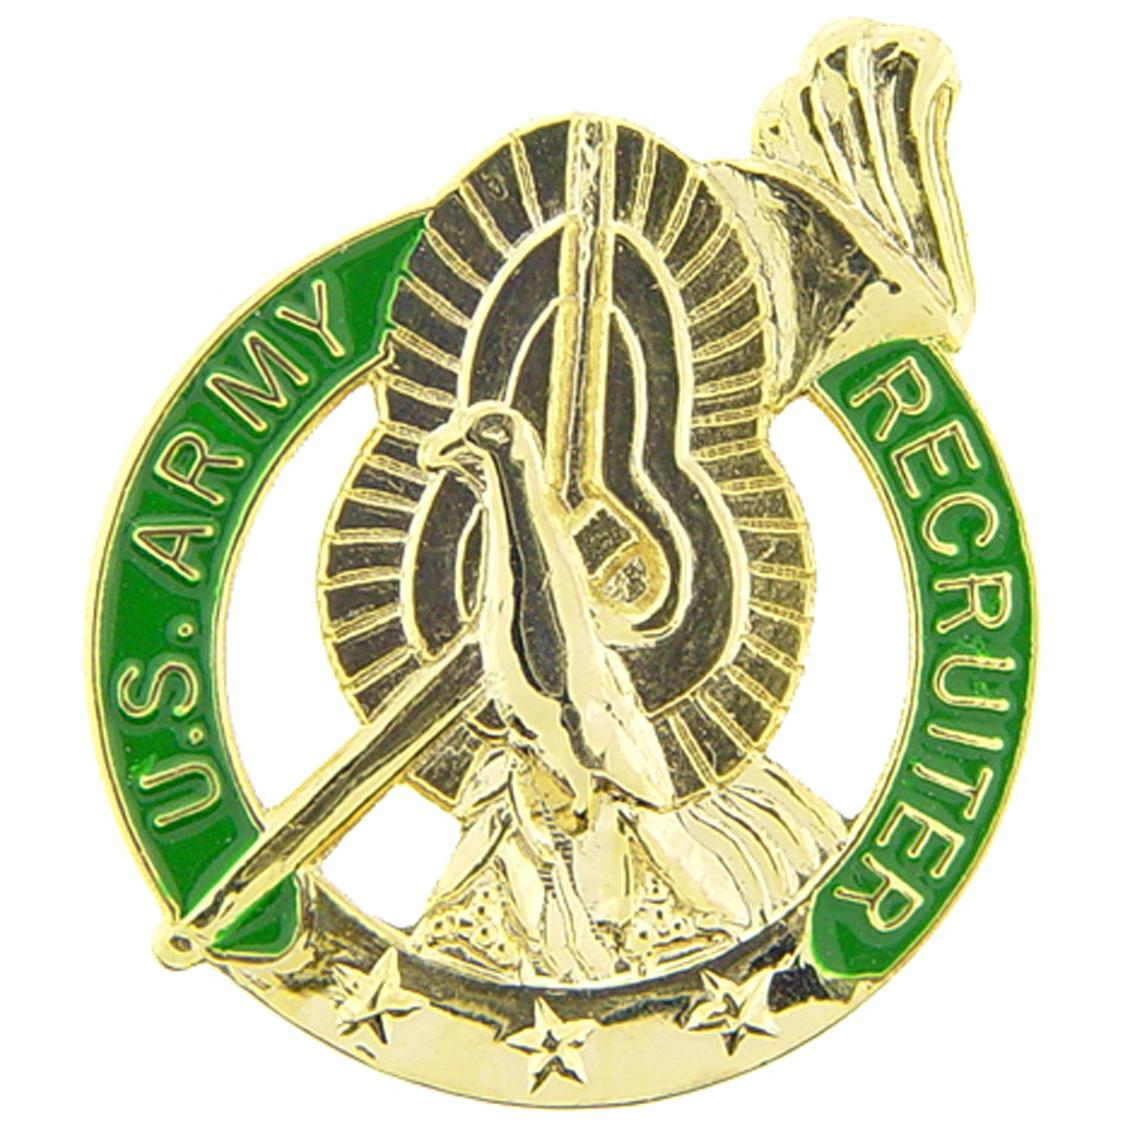 U.S. Army Recruiter Pin 1""